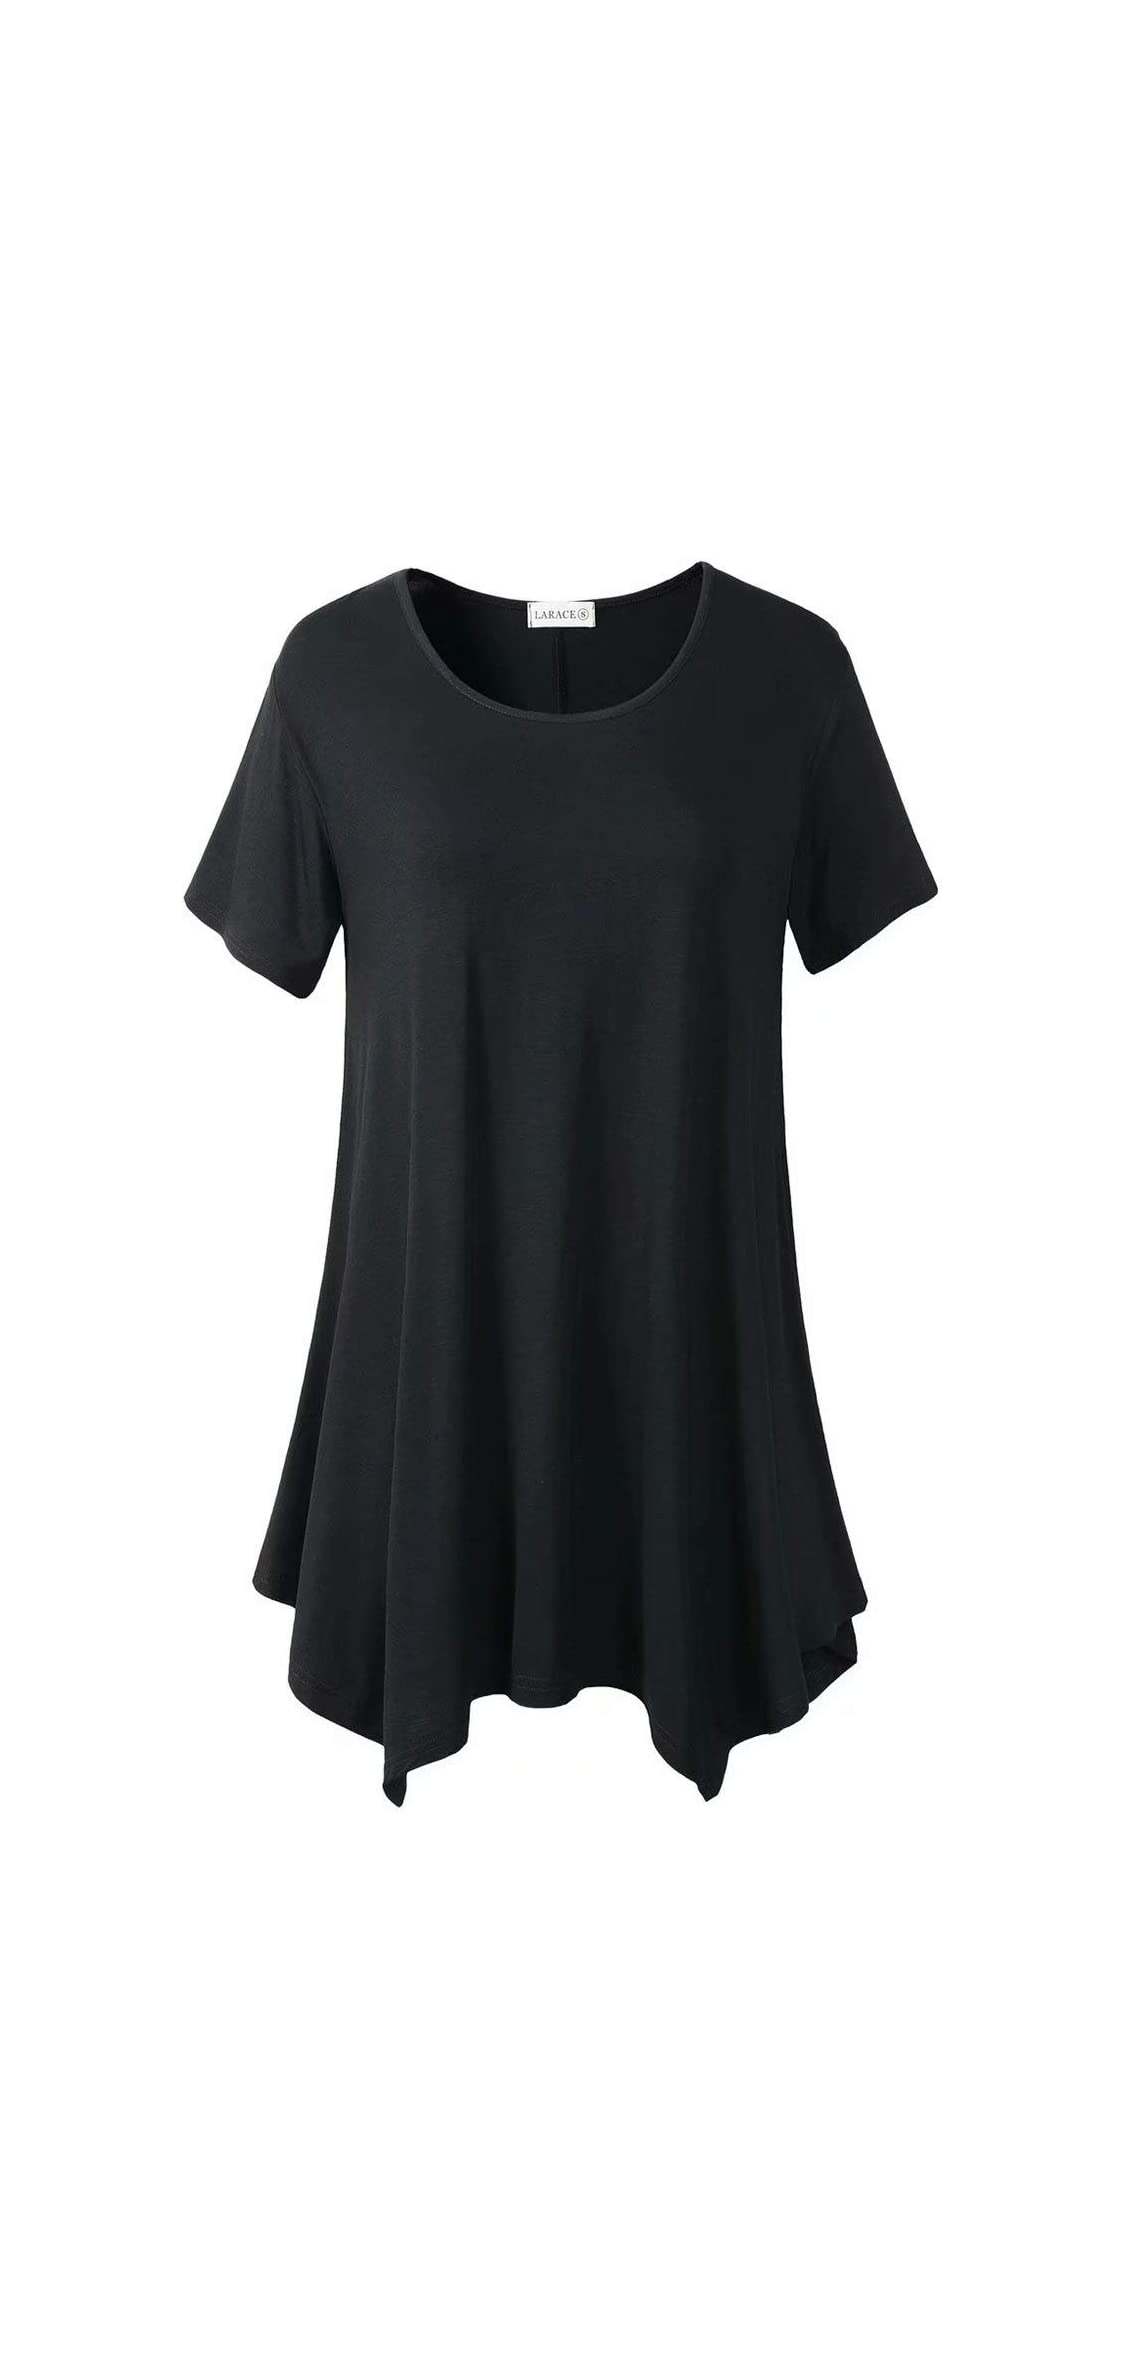 Womens Swing Tunic Tops Loose Fit Comfy Flattering T